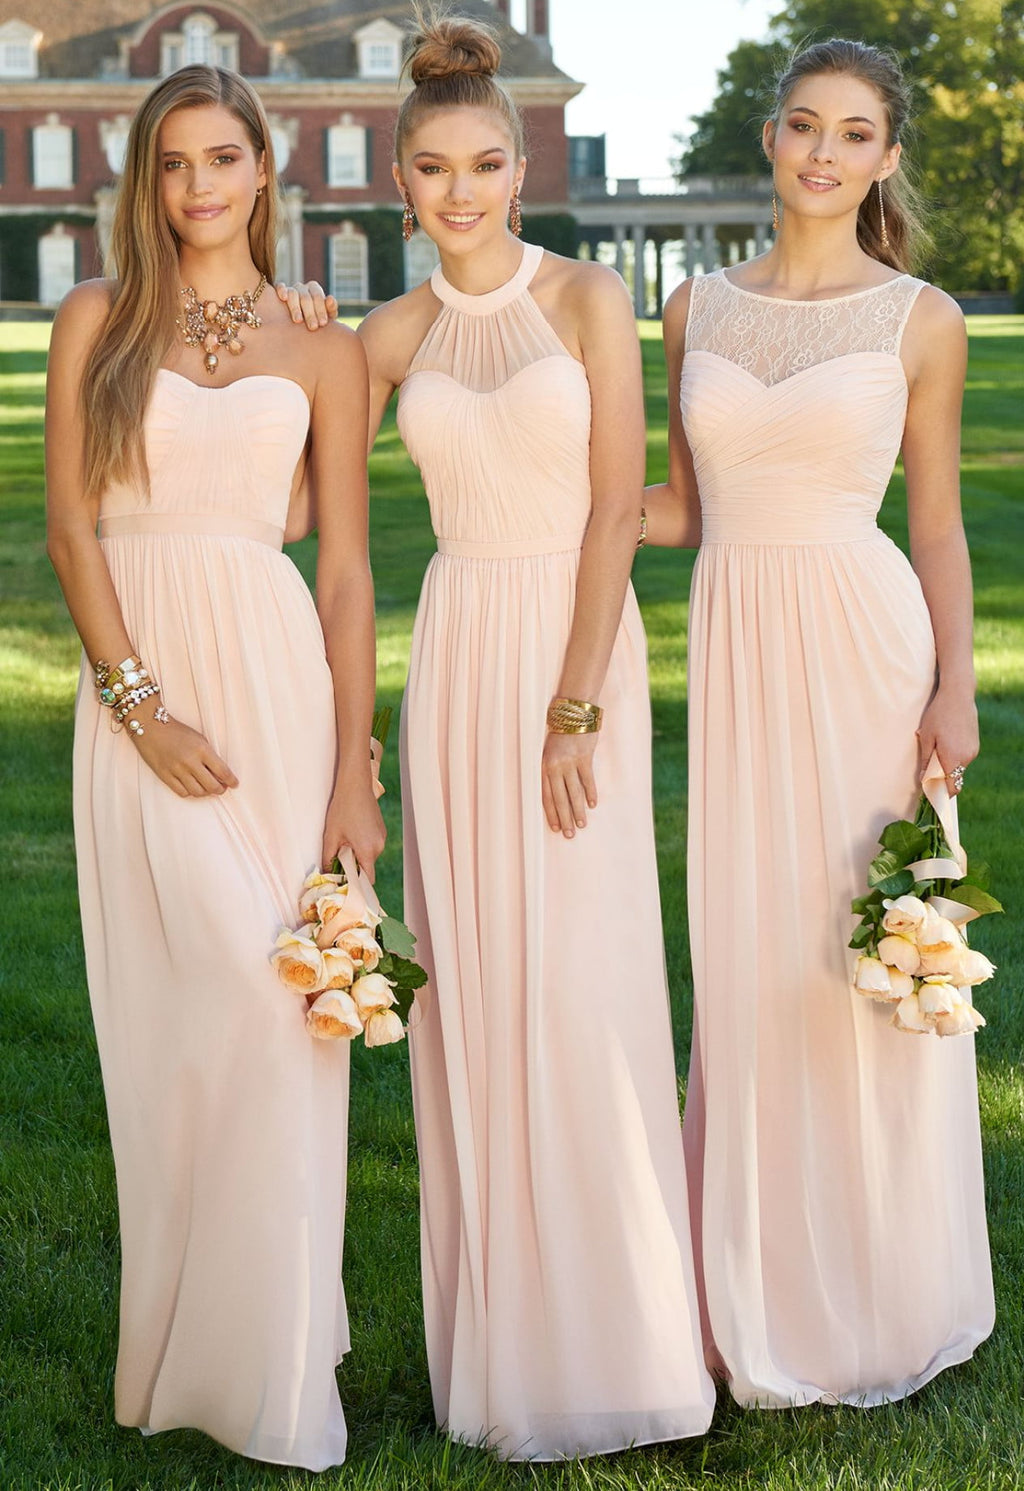 High Quality Pink Halter Floor Length Chiffon Evening Dresses Bridesmaid Dresses With Backless